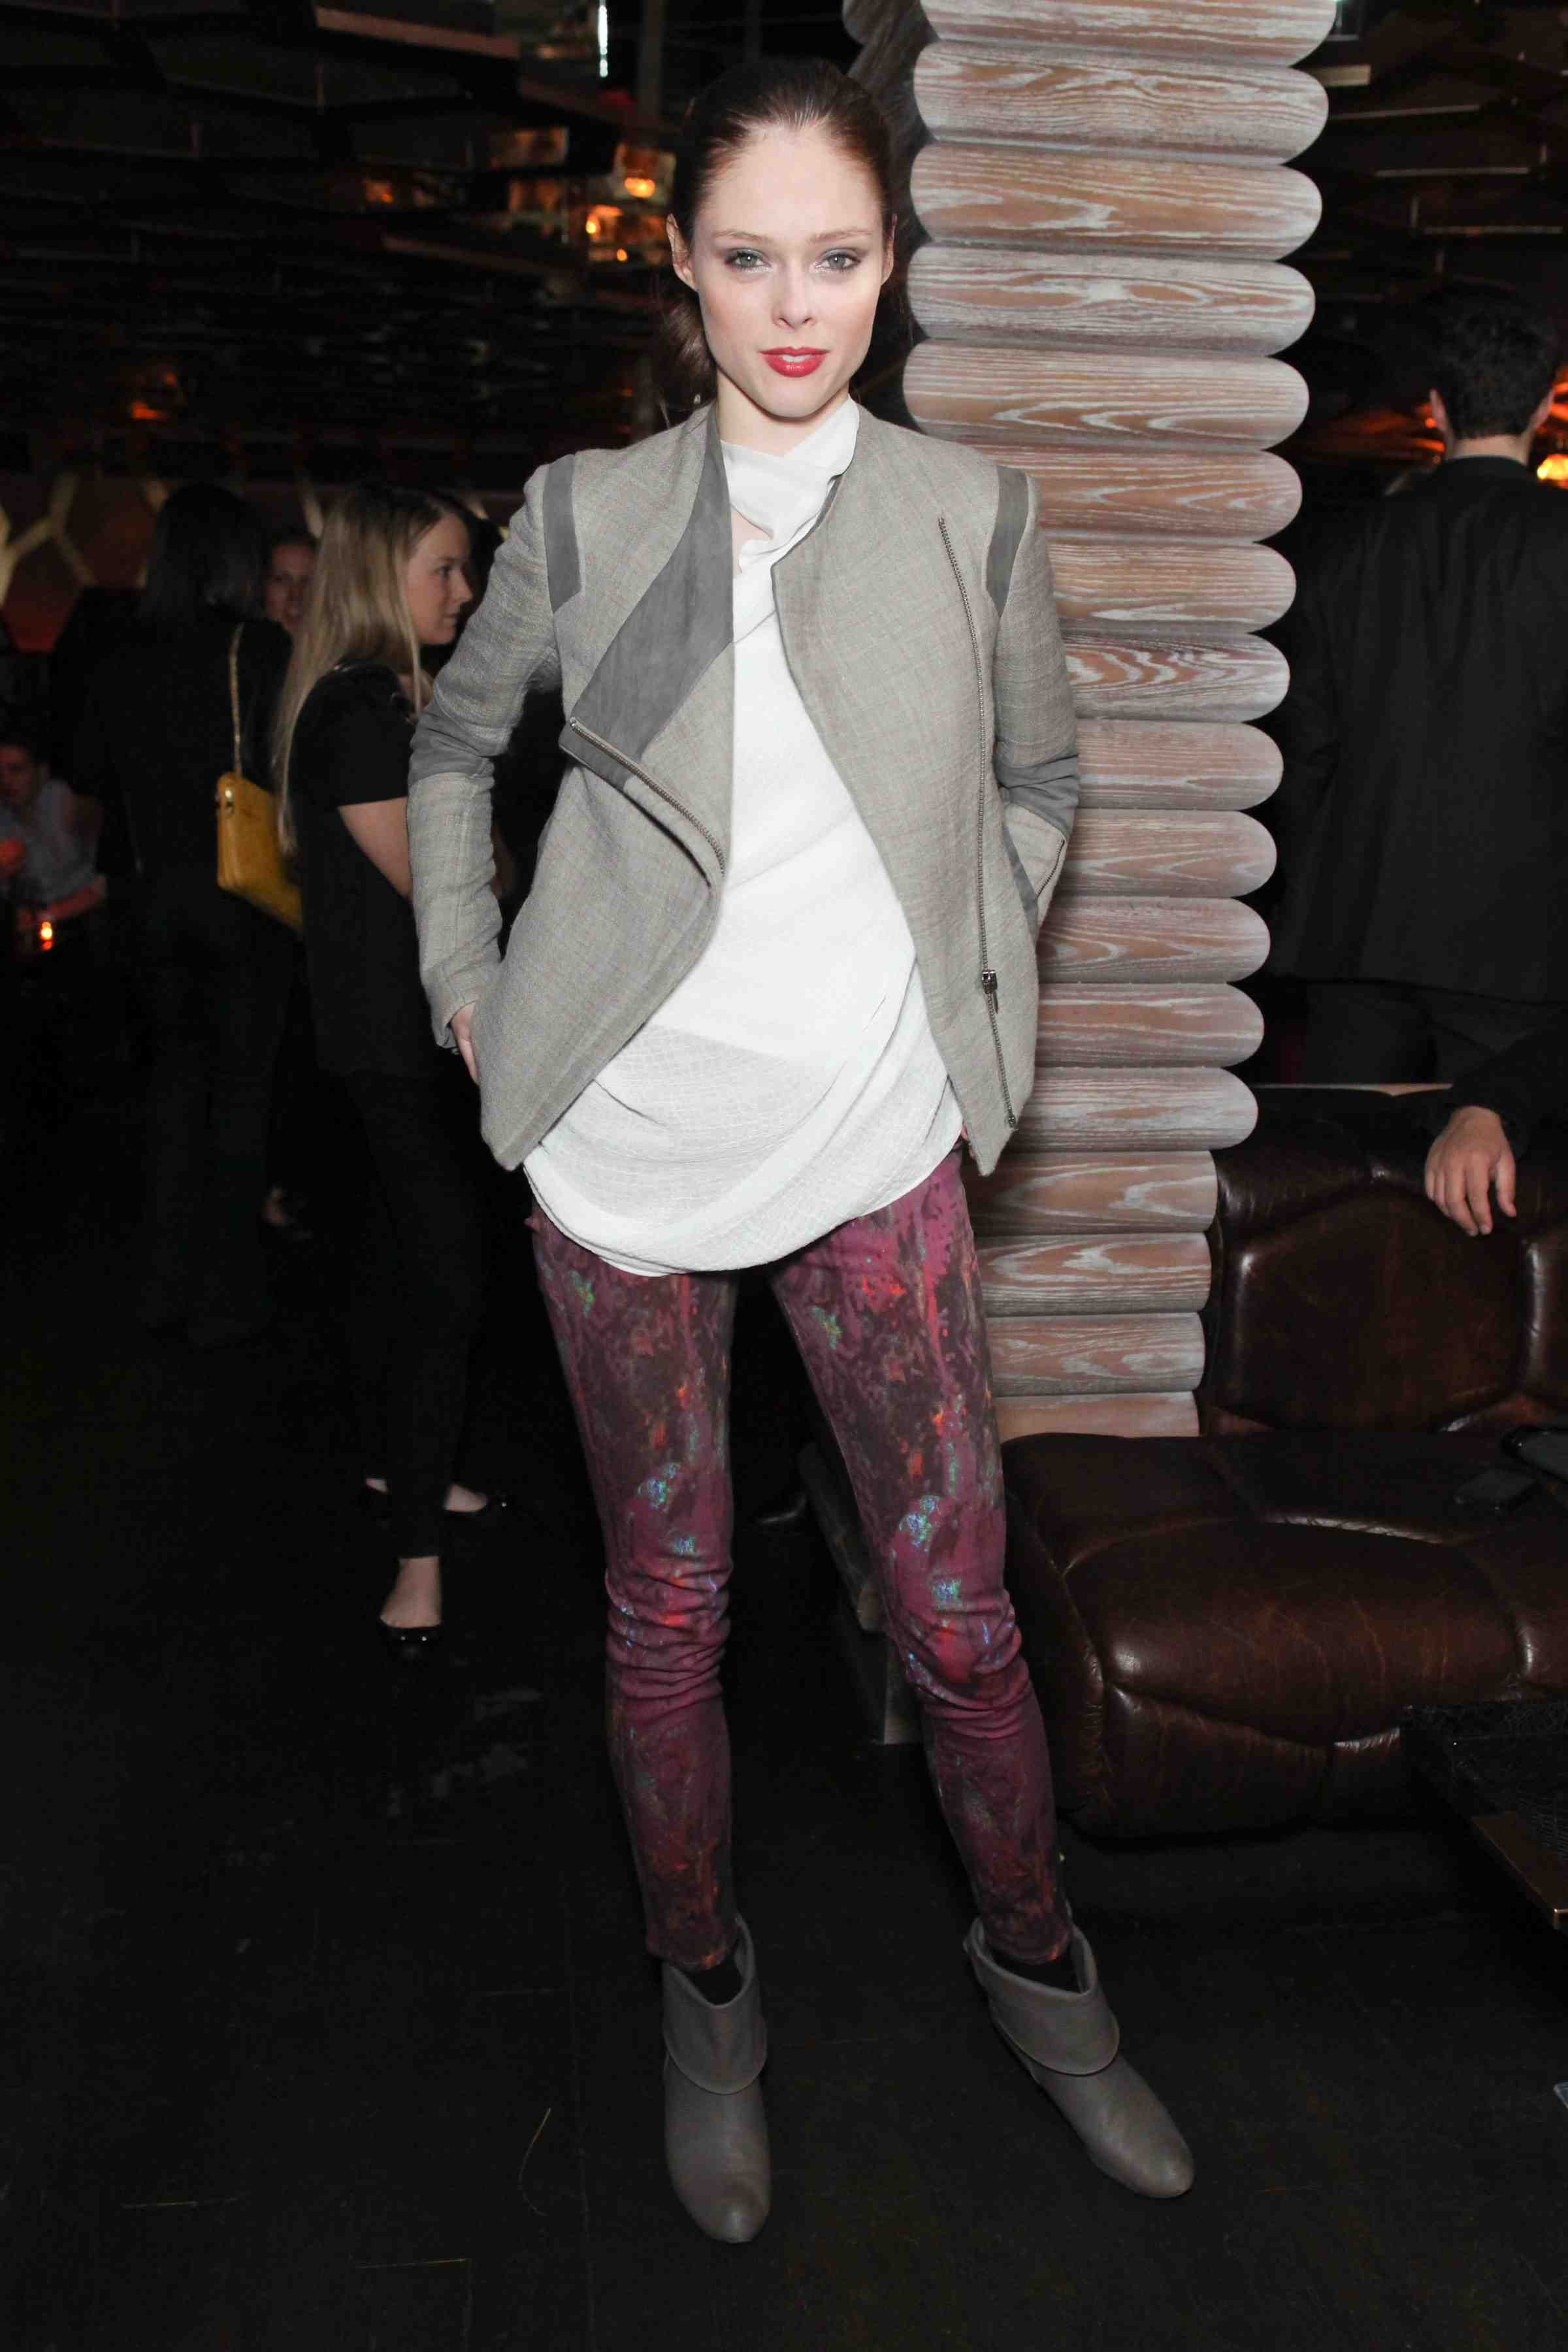 DarbyDownstairs_CocoRocha_Minkoff_2-1.10.12_low[5]